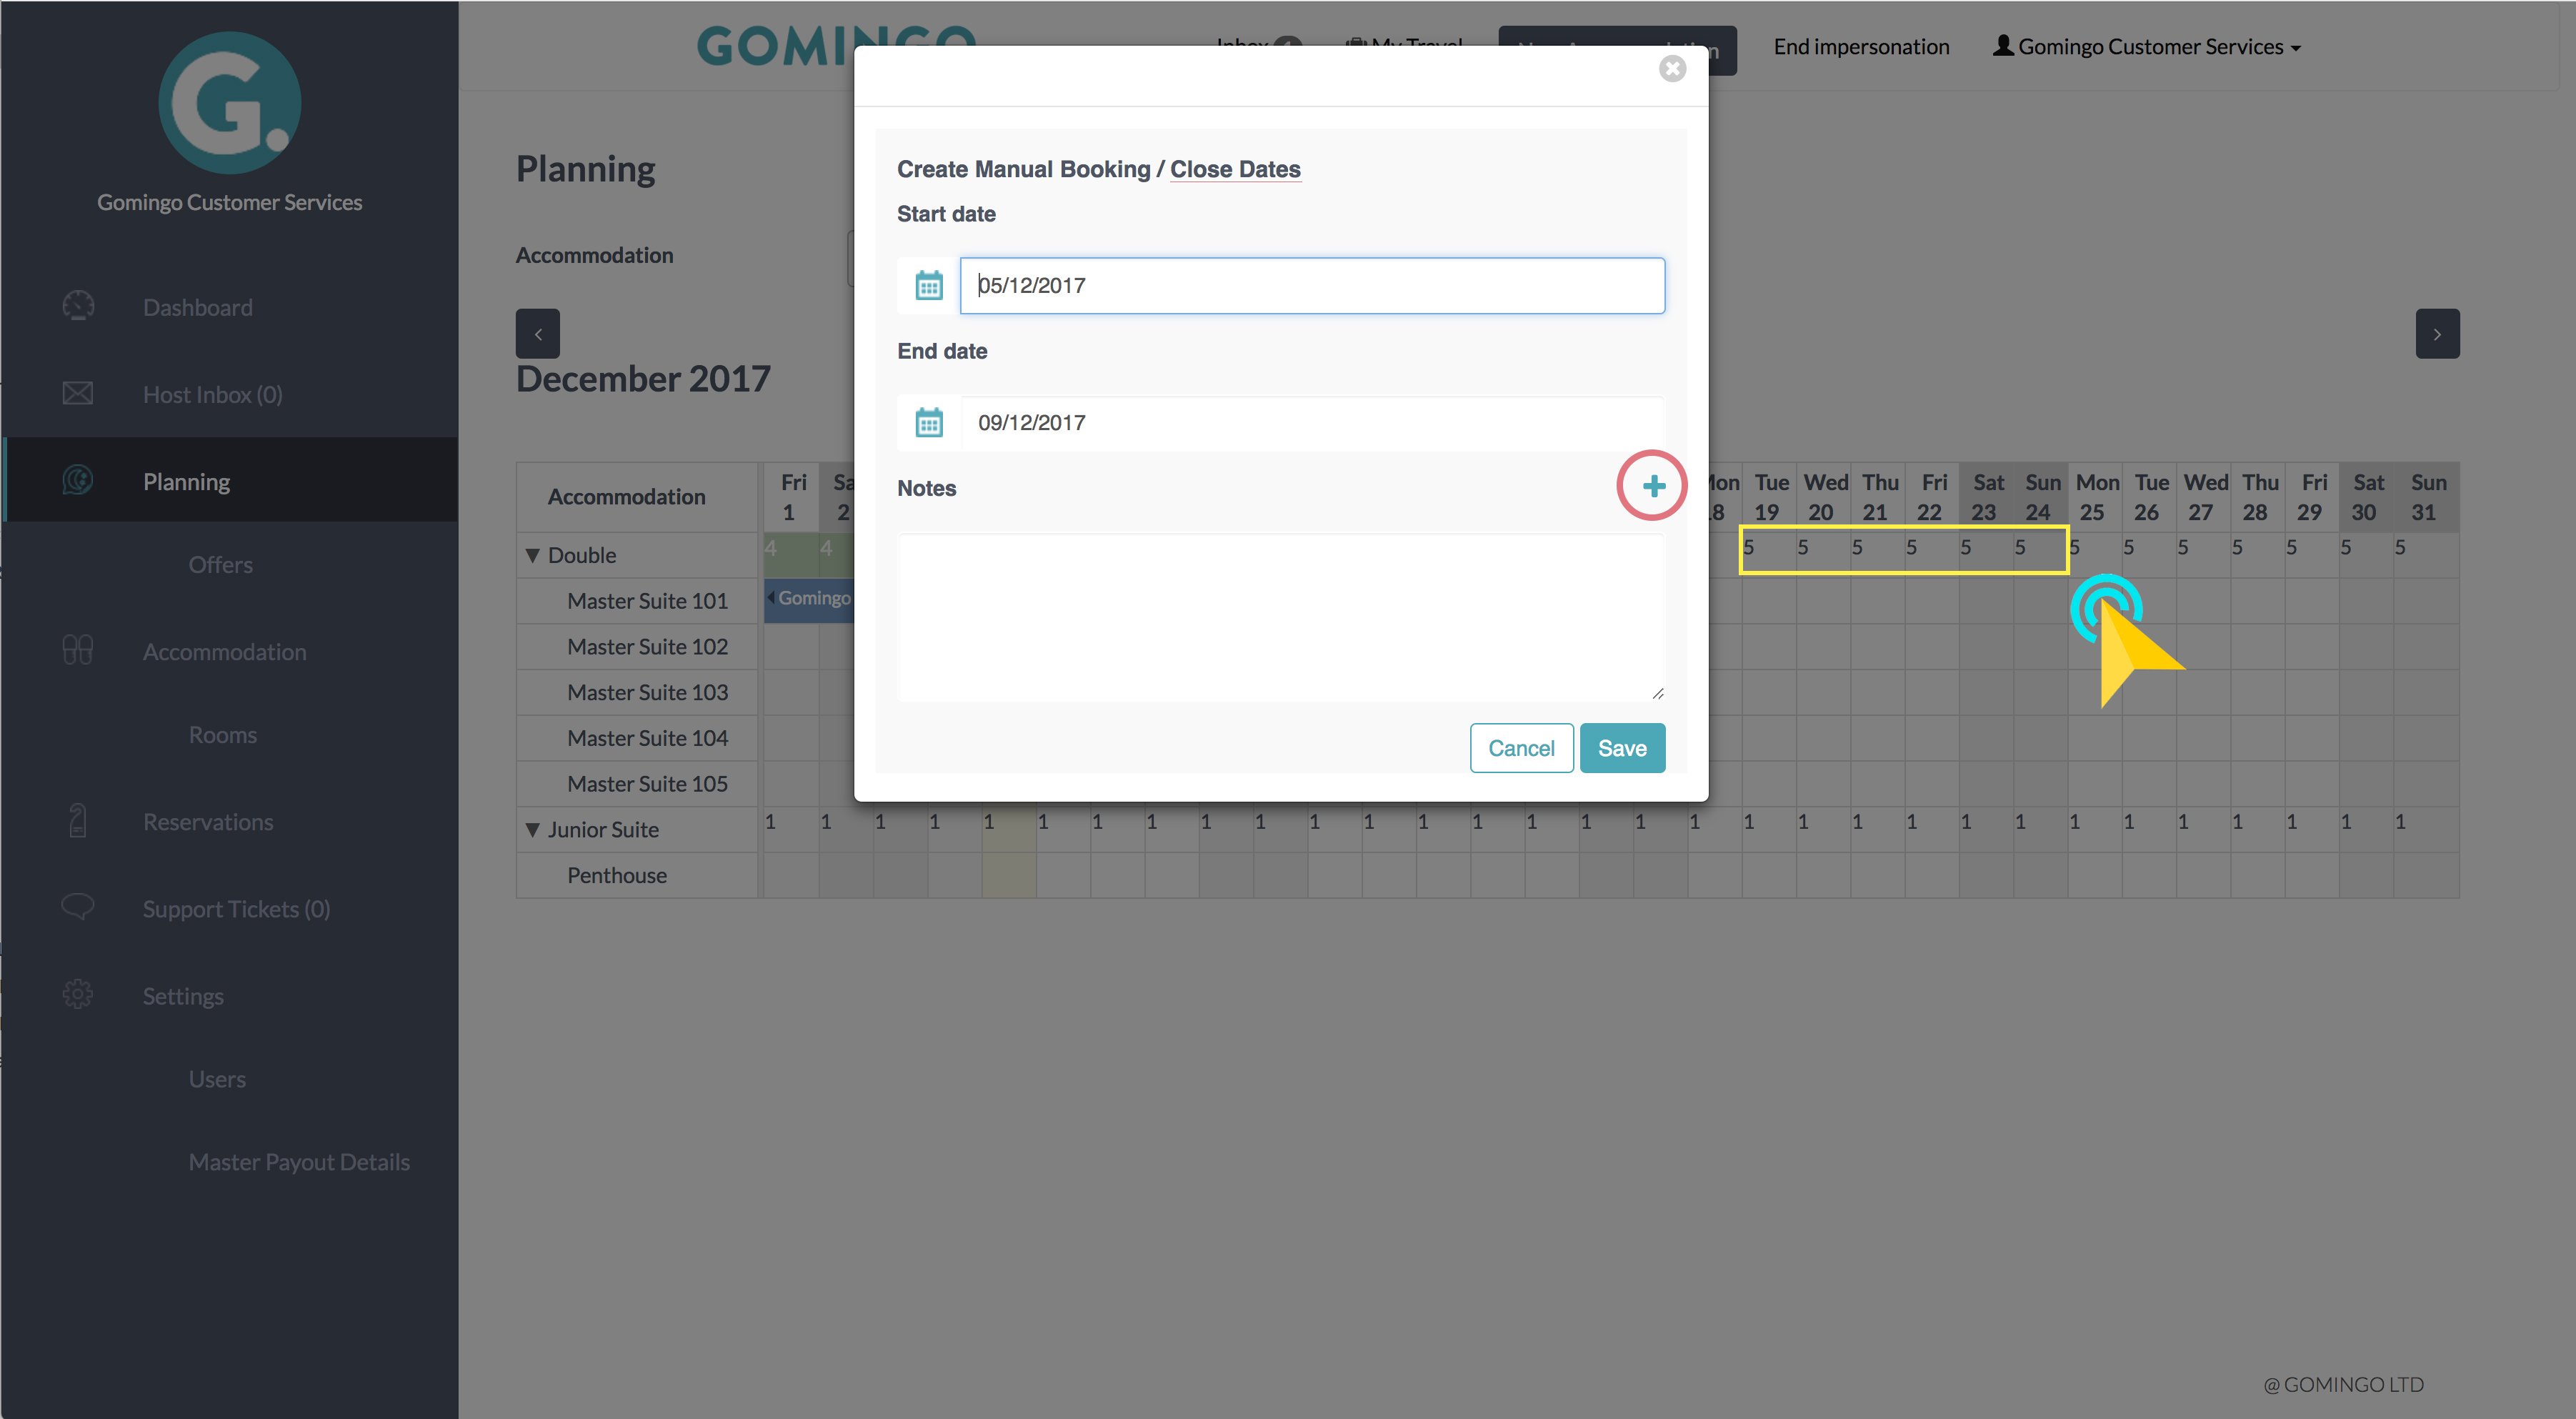 Gomingo Planning- Blocking Dates as Unavailable